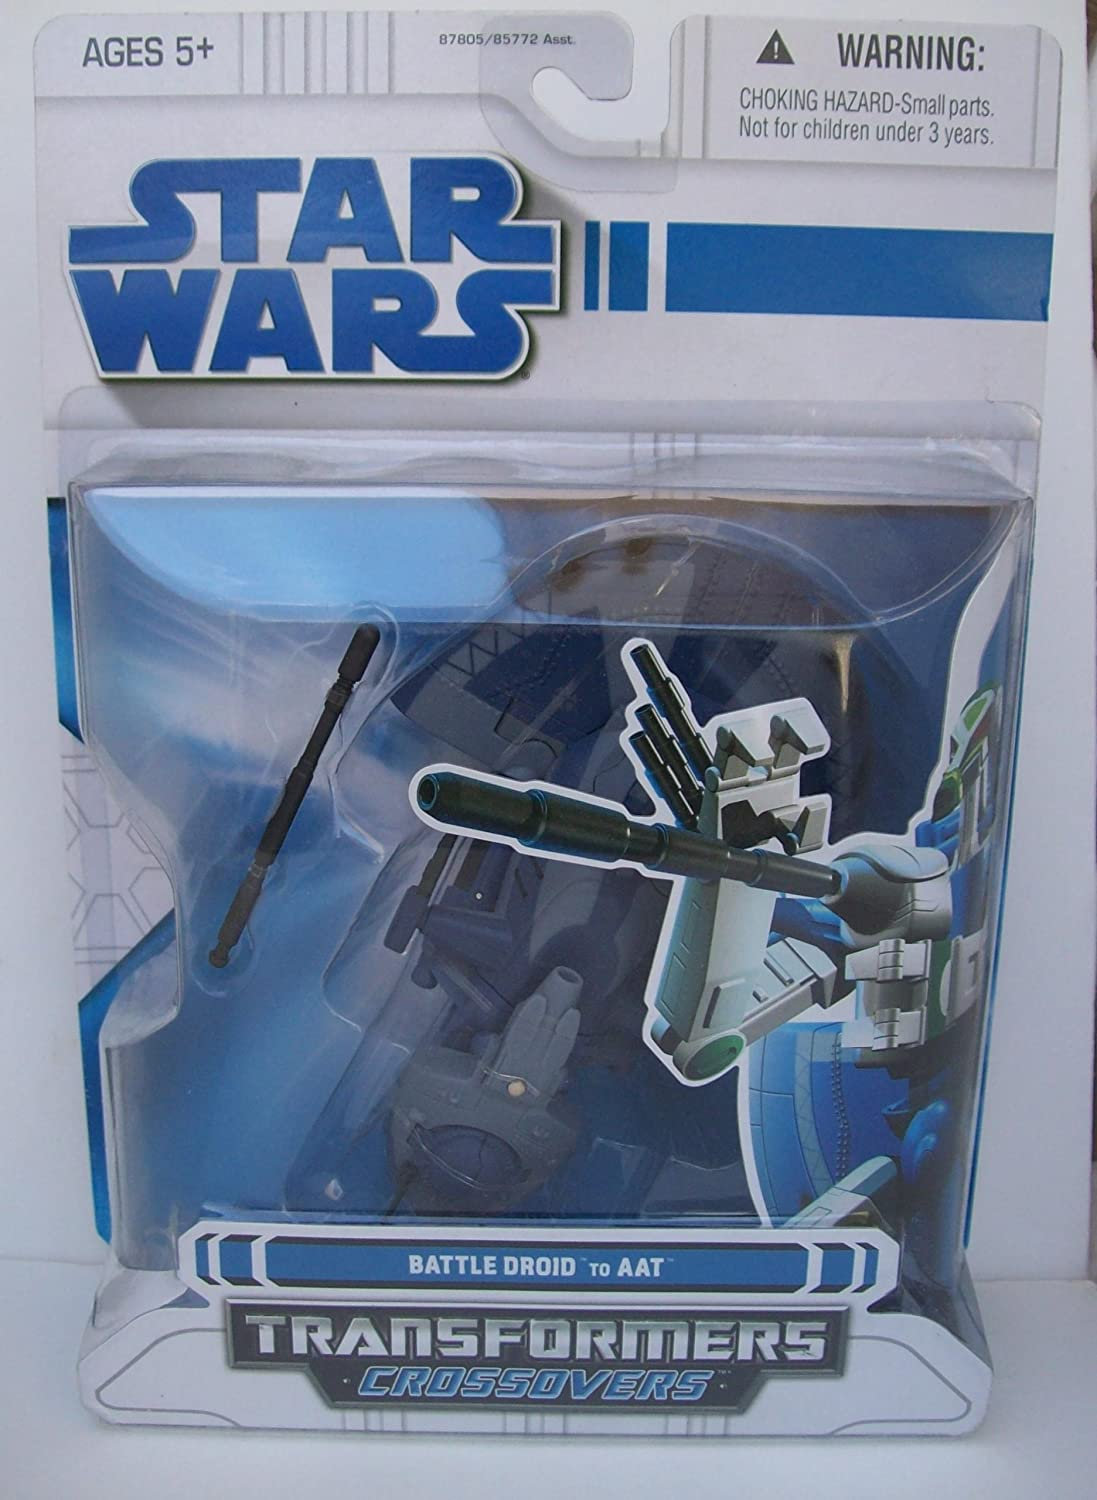 Star Wars - Transformers crotvers - Battle Droid to AAT